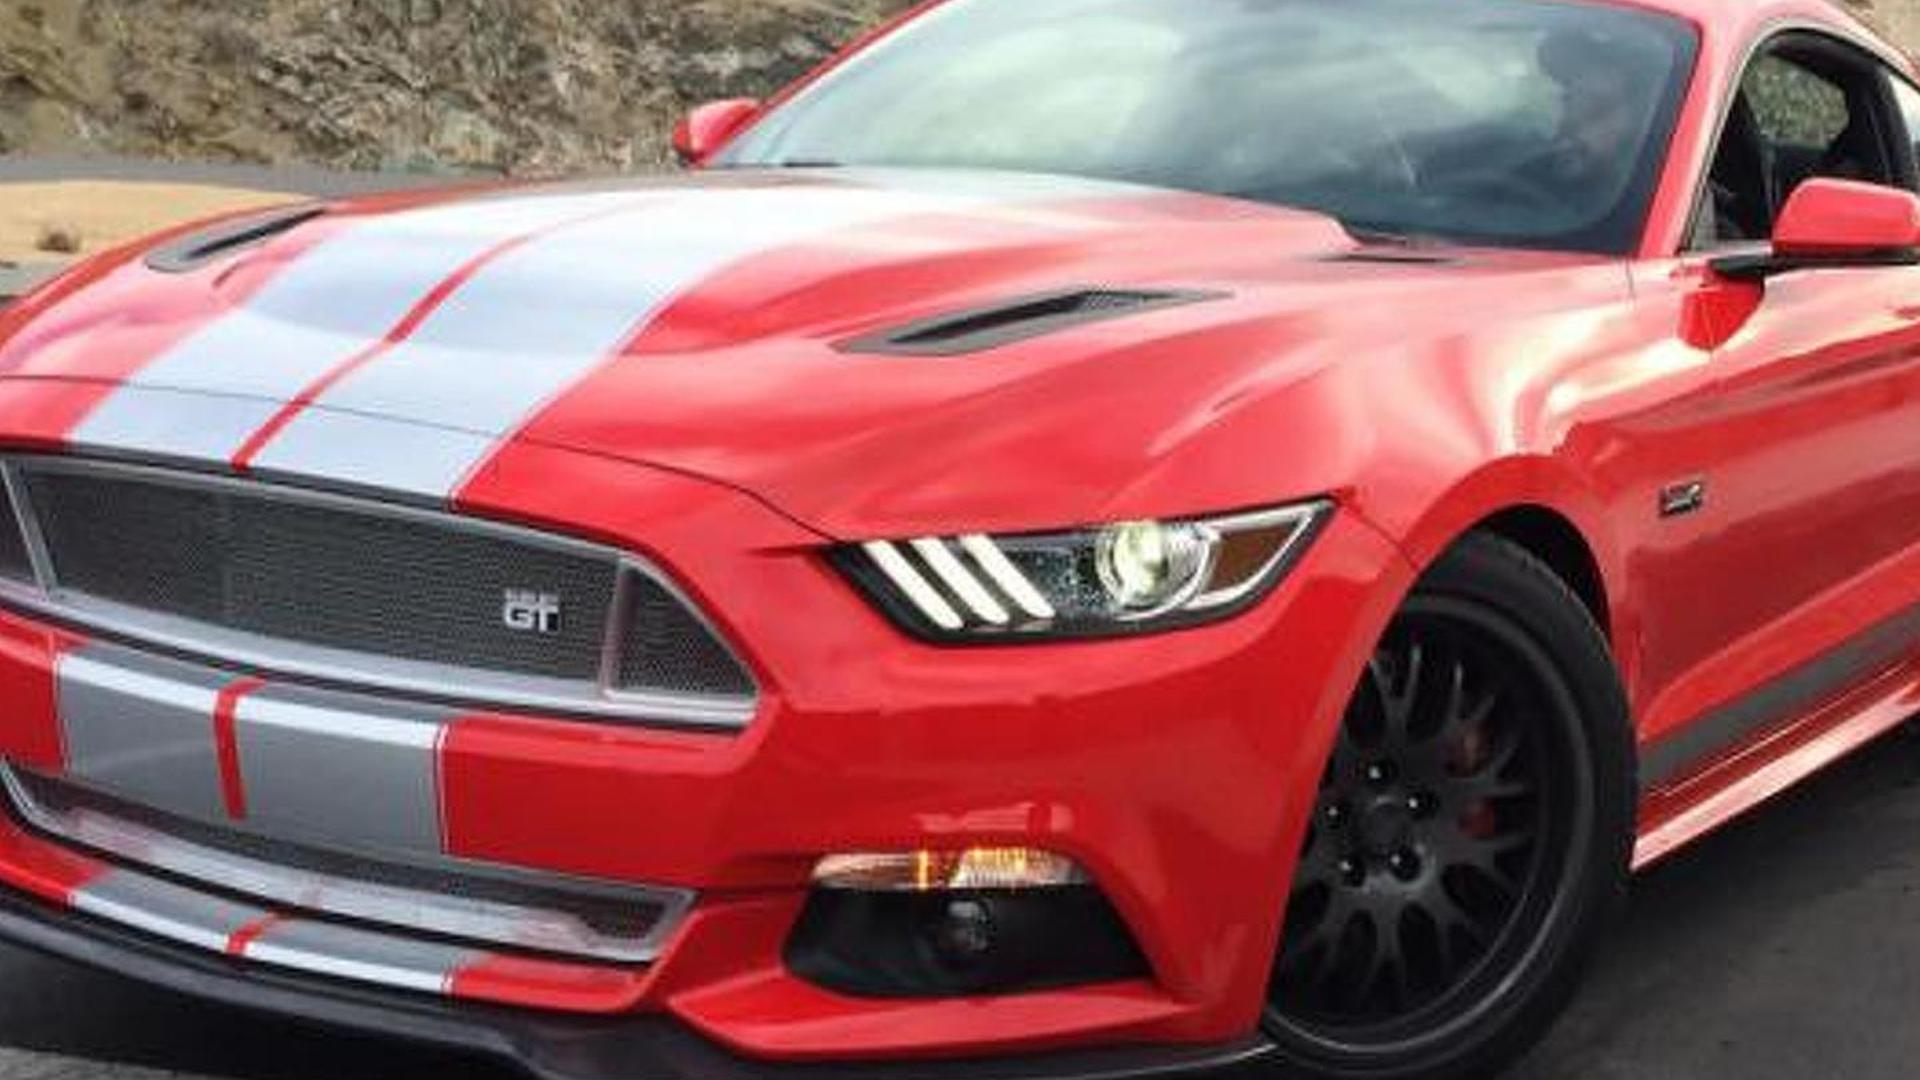 2015 Shelby GT photographed completely undisguised